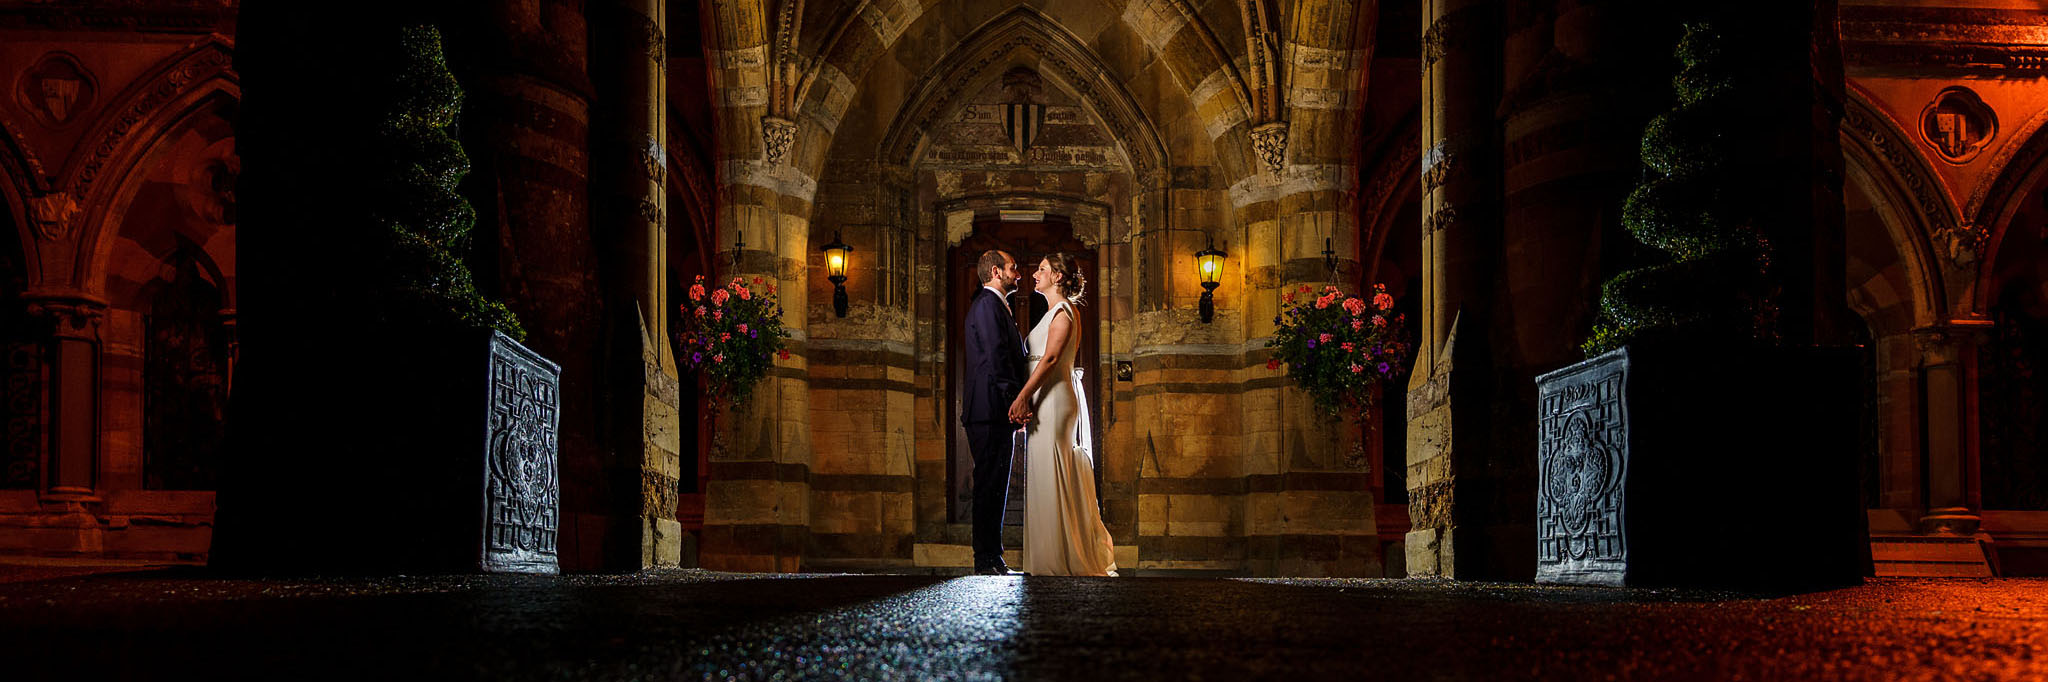 dramatic nighttime photo of the bride and groom